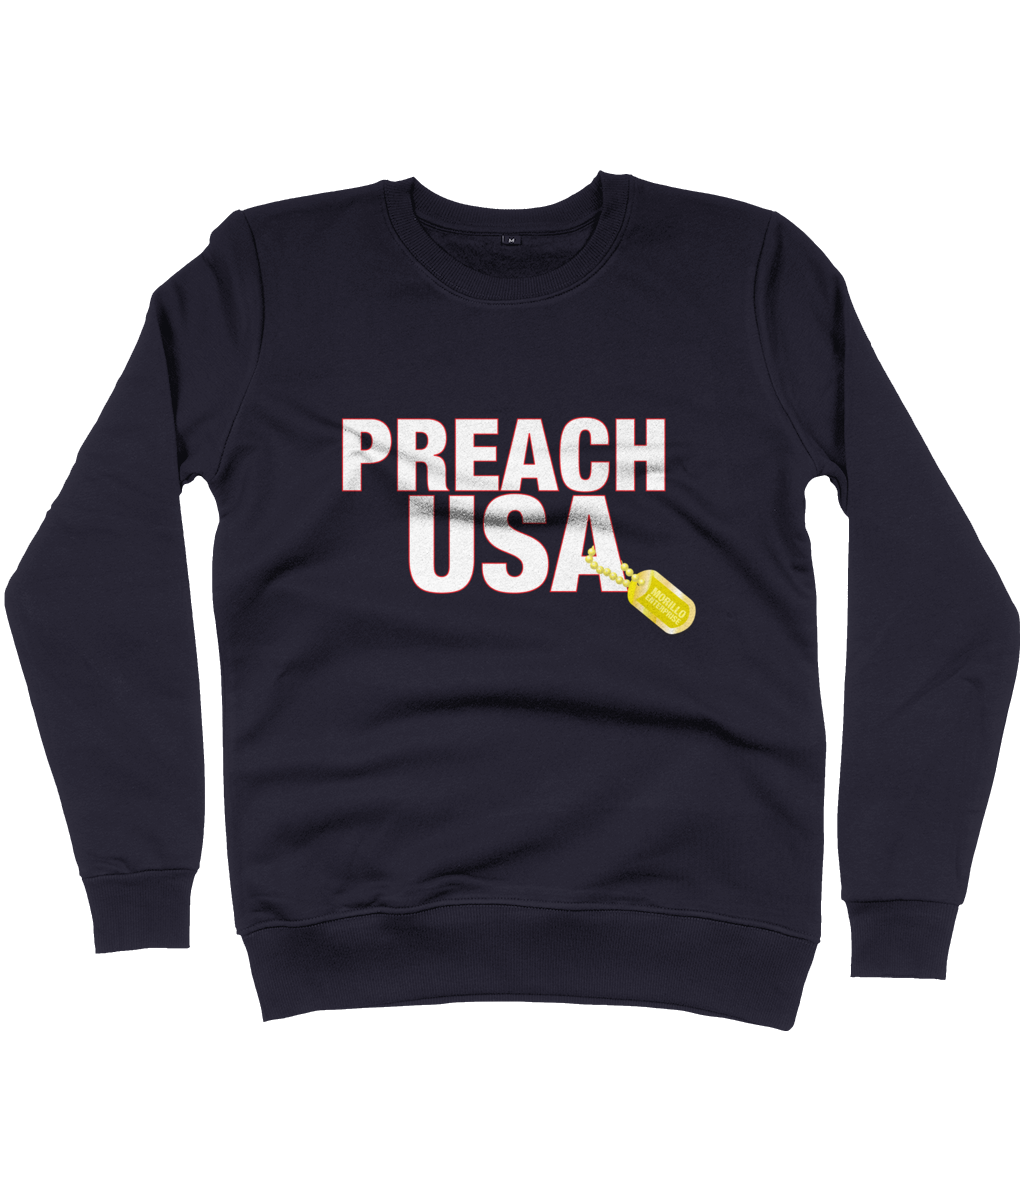 PREACH USA LOGO SWEATSHIRT Clothing - MORILLO ENTERPRISE